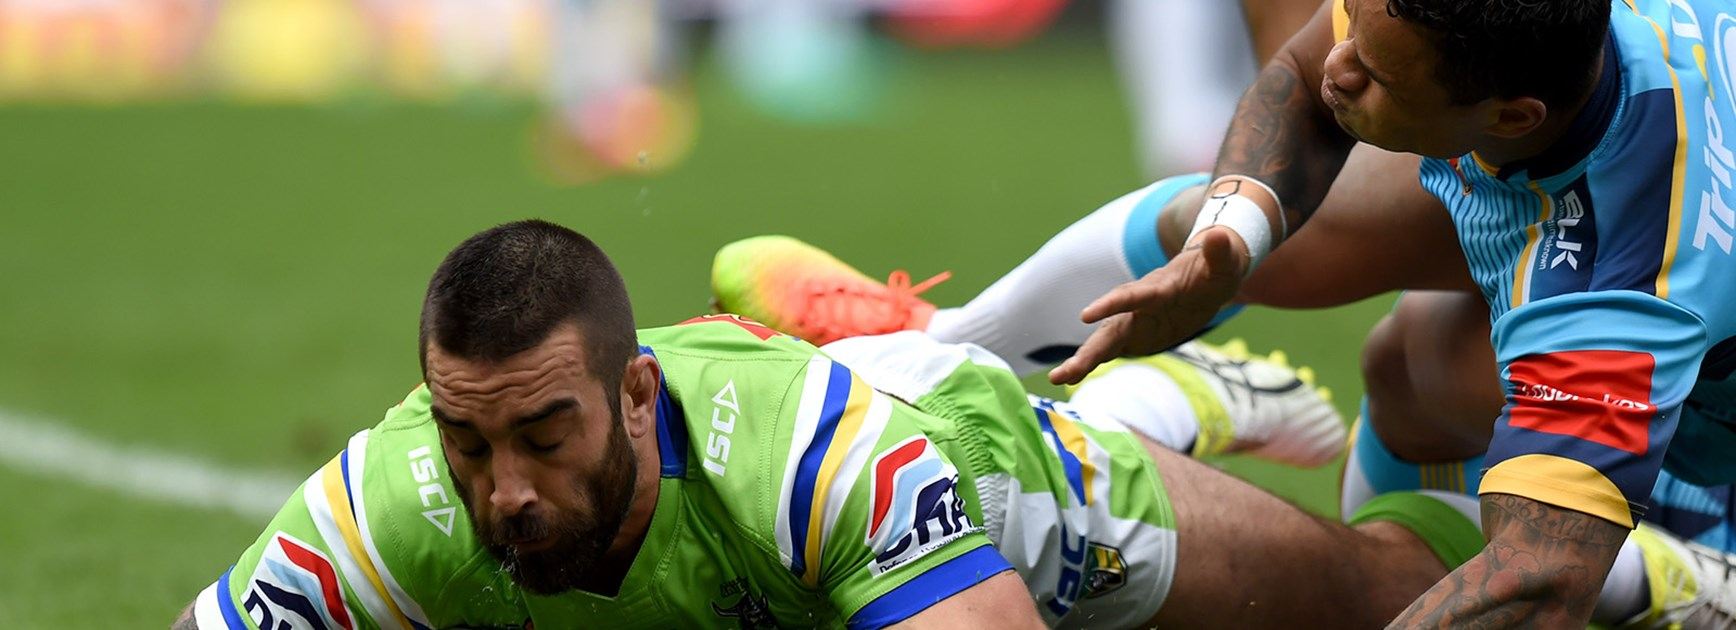 Paul Vaughan scored the first try for the Raiders against the Titans.